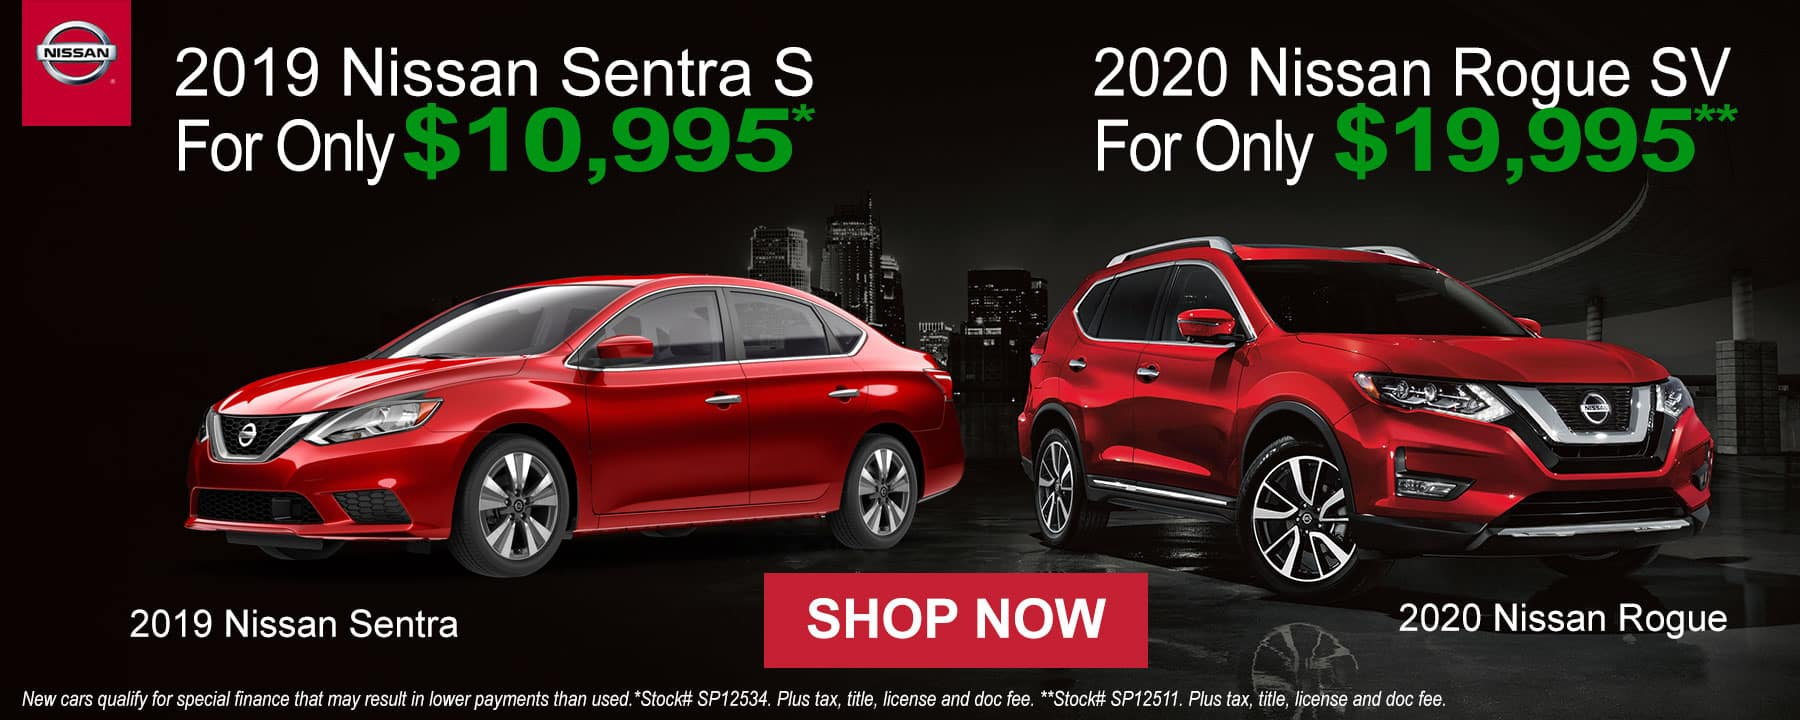 Shop the 2019 Nissan Sentra or 2020 Nissan Rogue at Prices You Won't See ANYWHERE else!